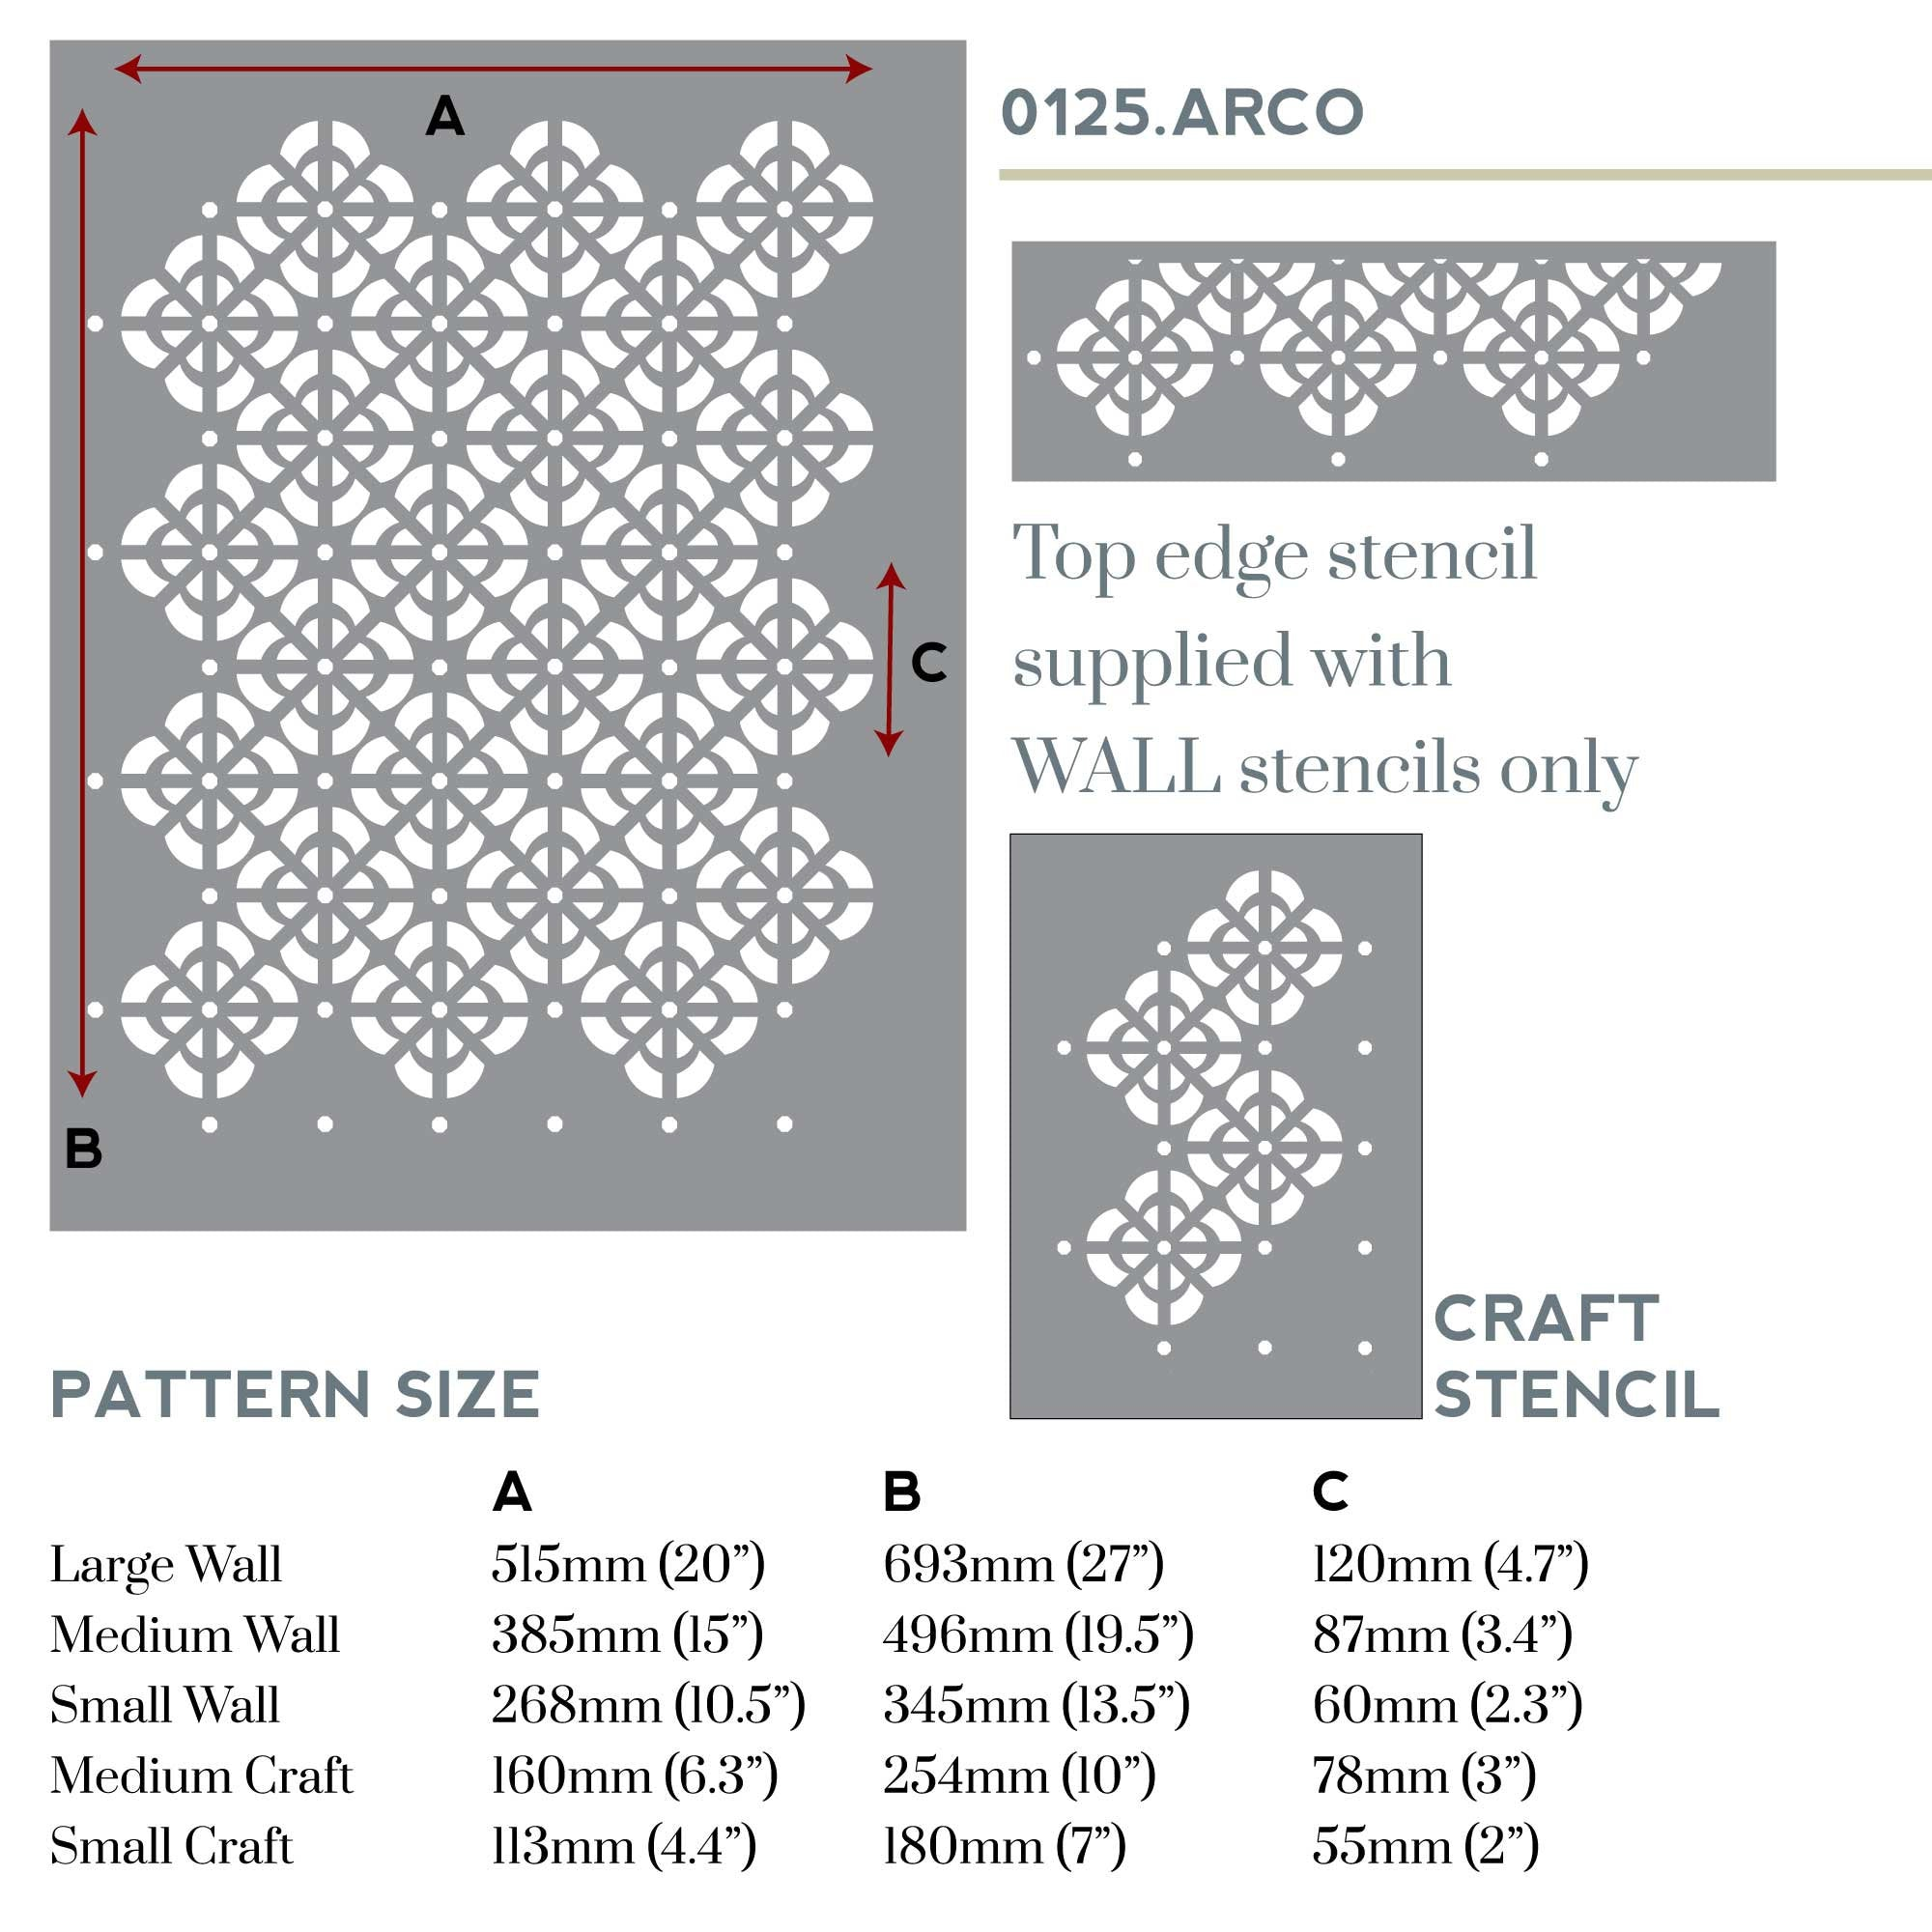 Arco lattice wall stencil measurements